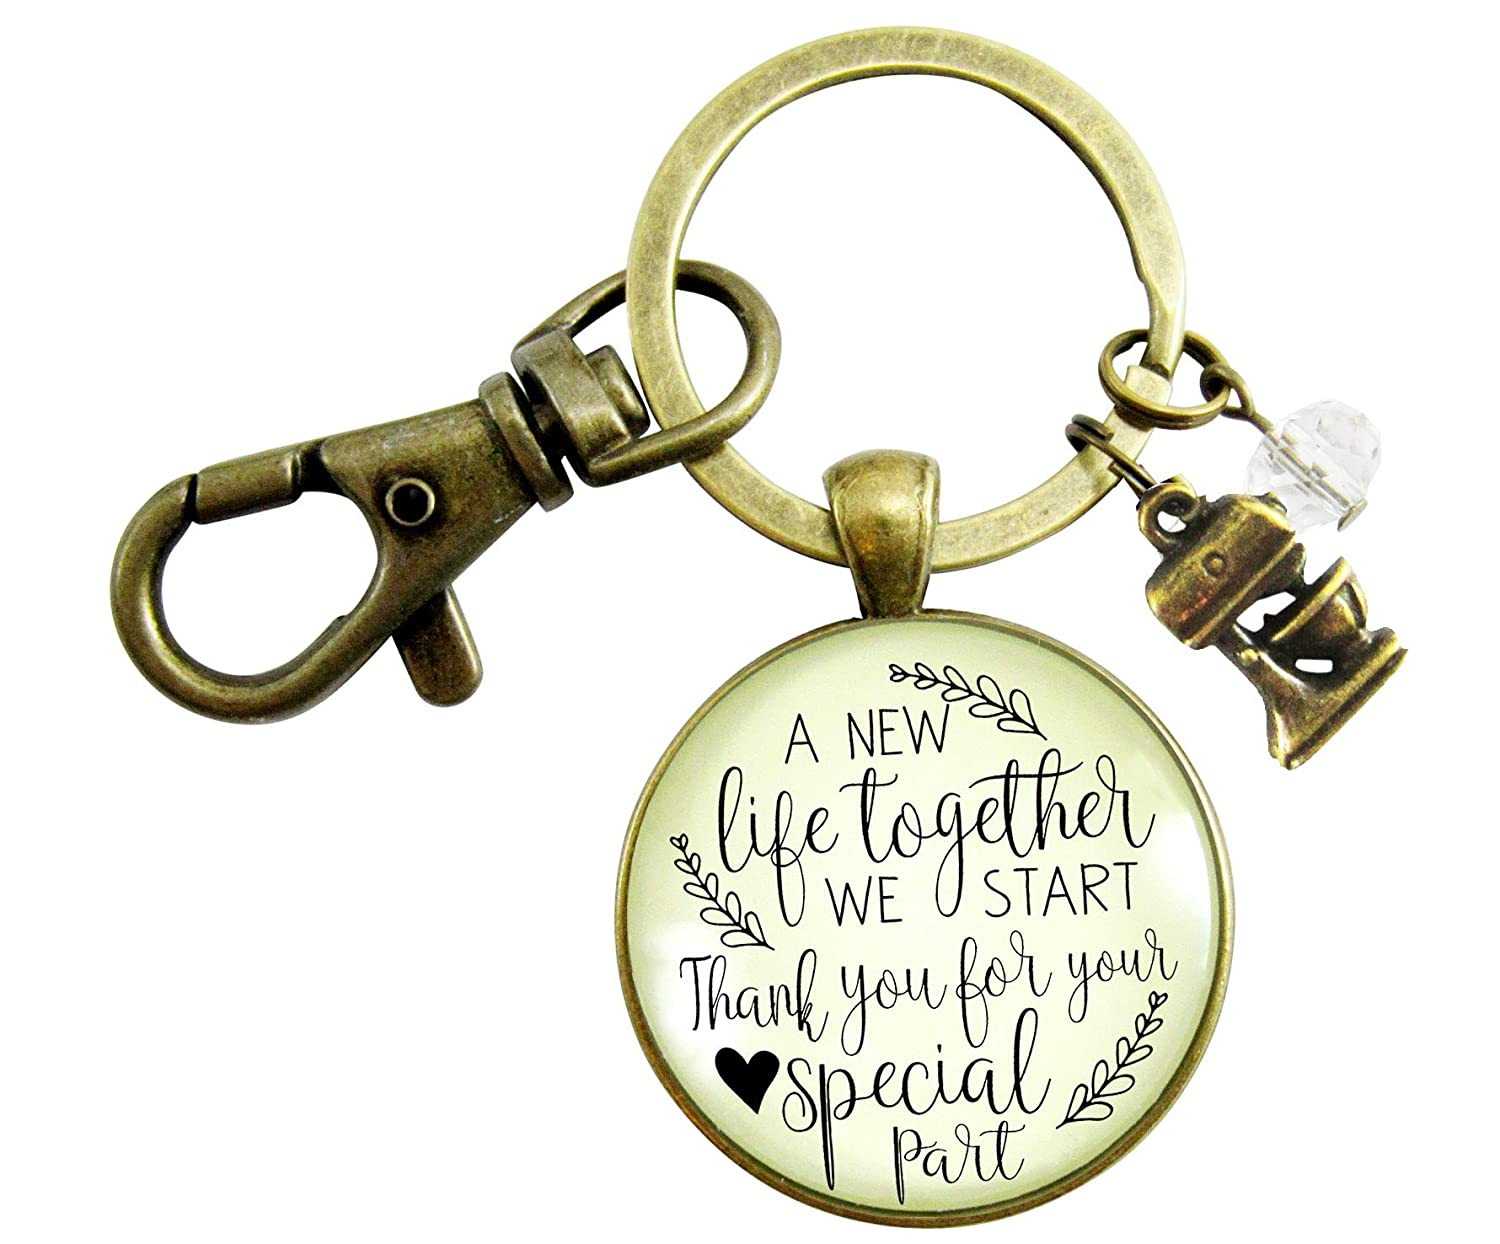 Wedding Cake Maker Gift Keychain A New Life We Start Rustic Jewelry Thanks Baker Mixer Charm Appreciation Note Card - Gutsy Goodness